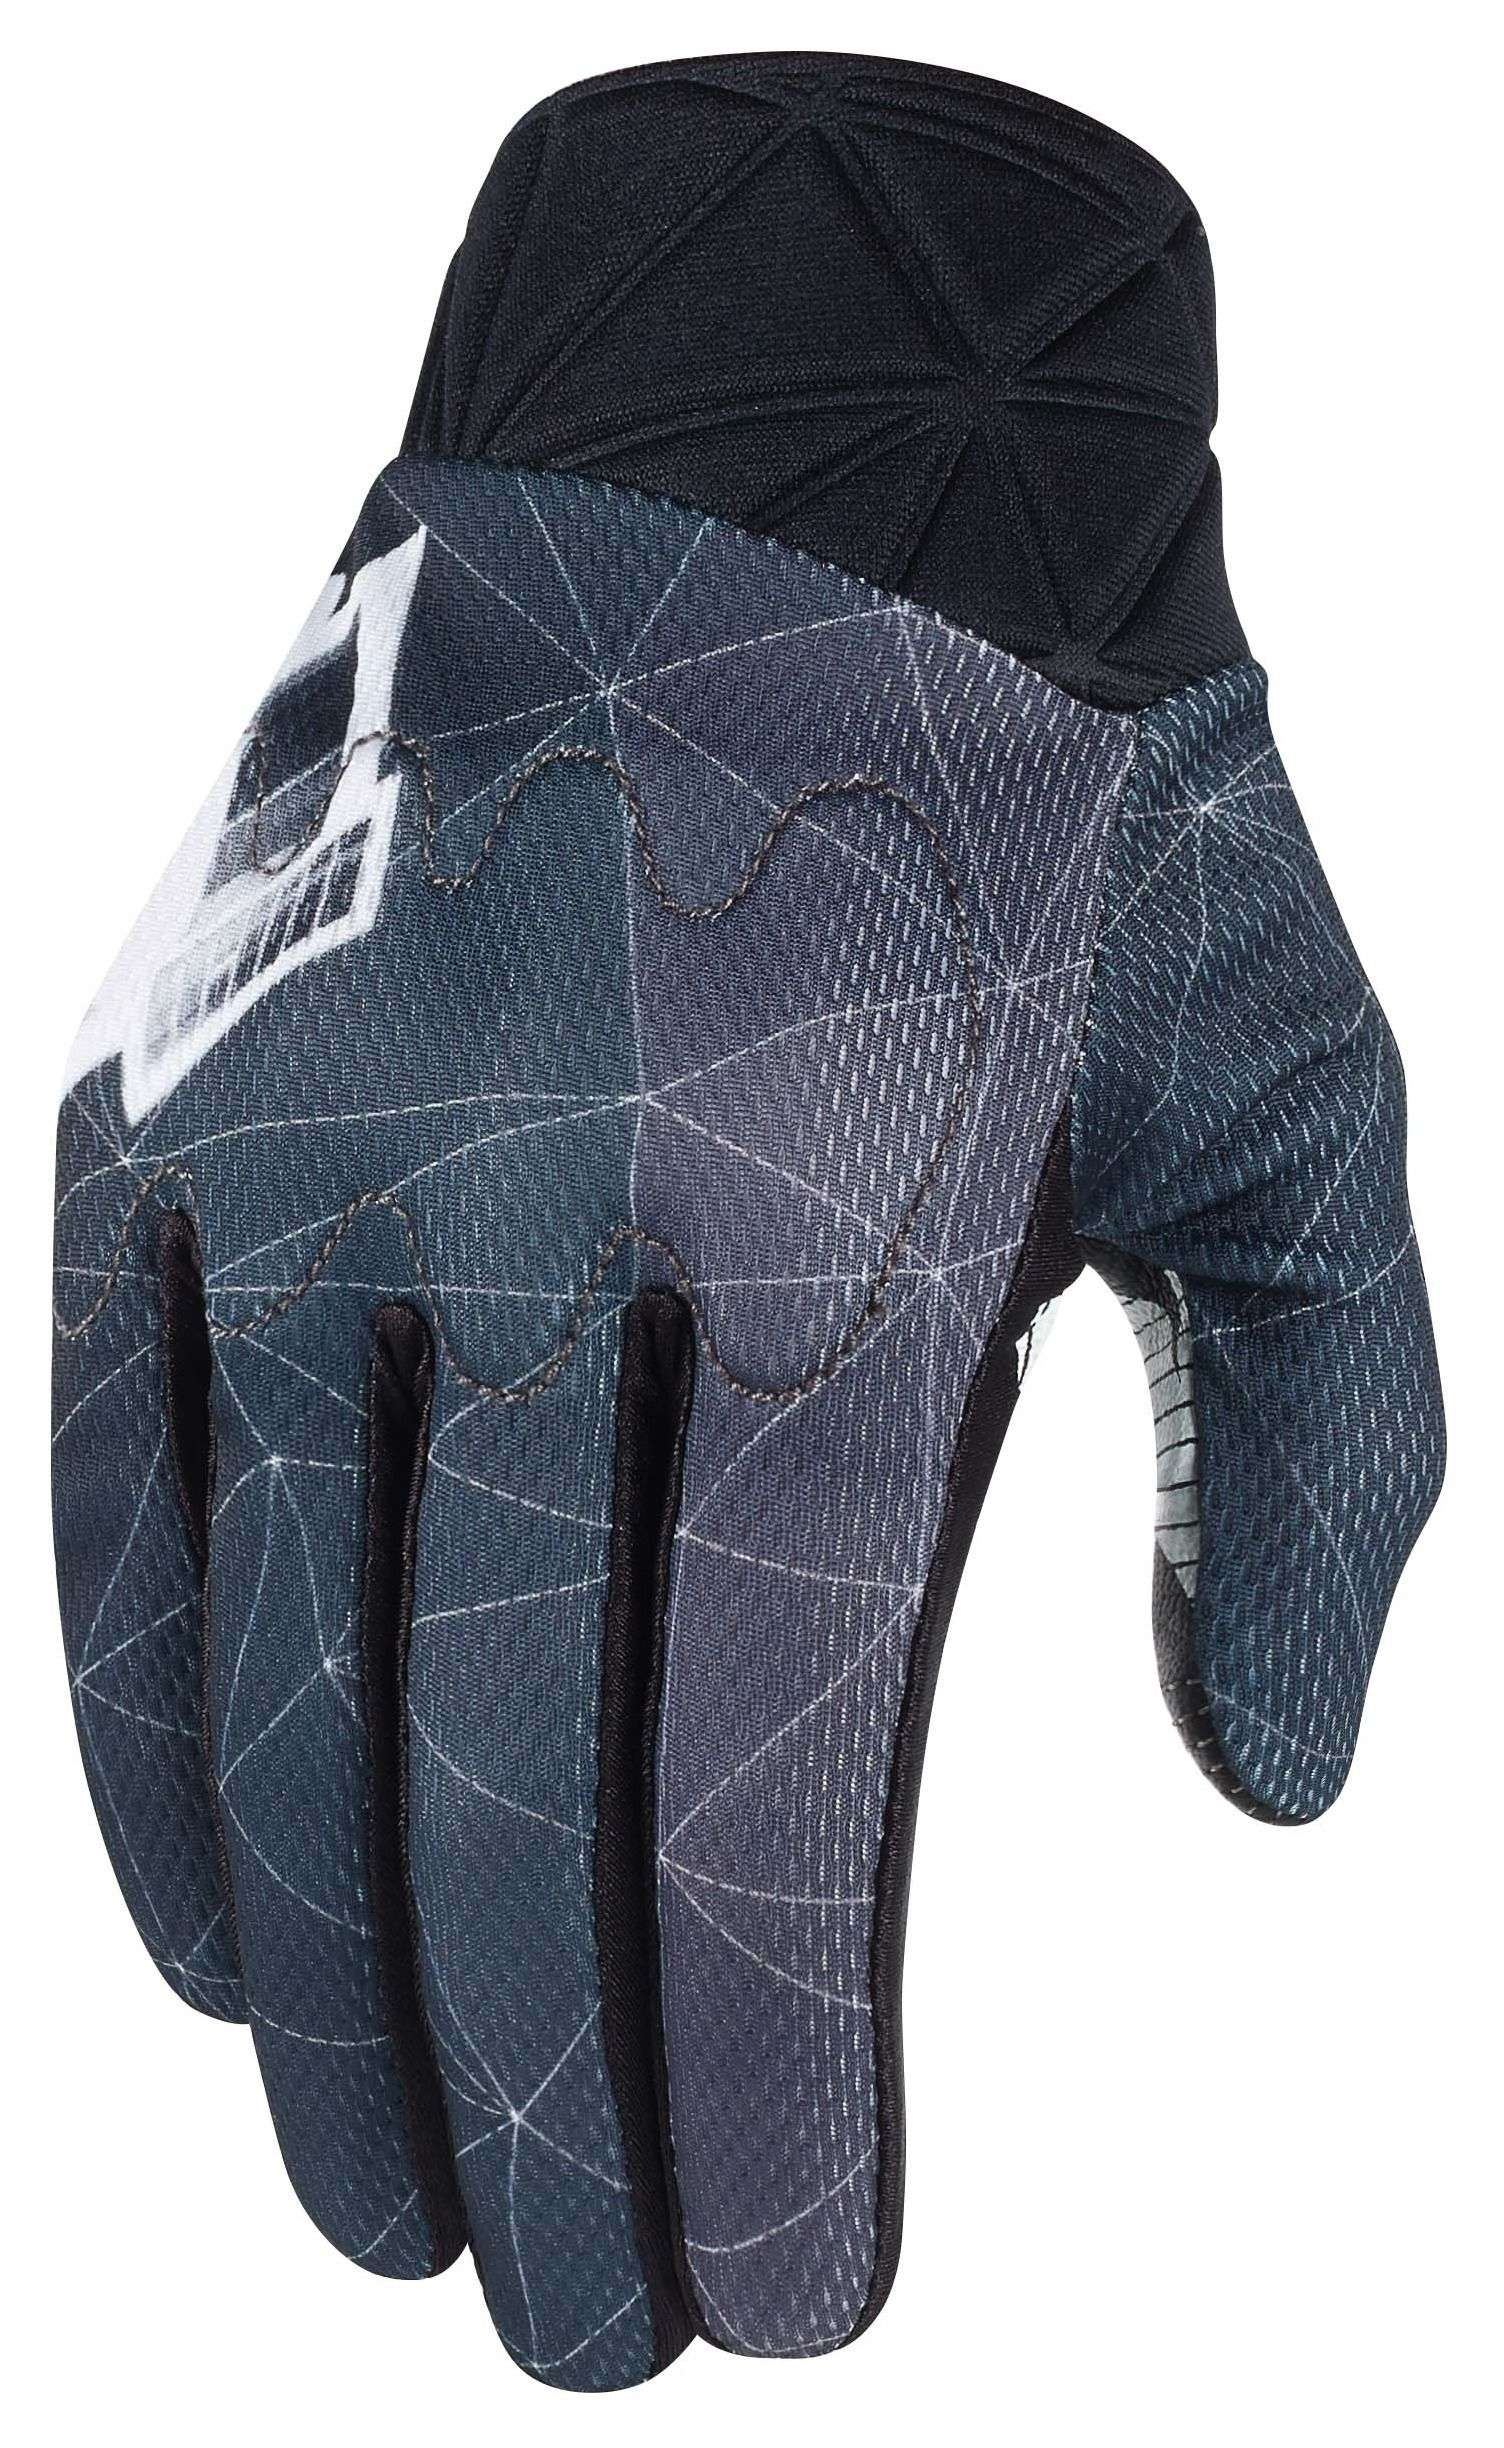 Motorcycle gloves d30 - Motorcycle Gloves D30 9